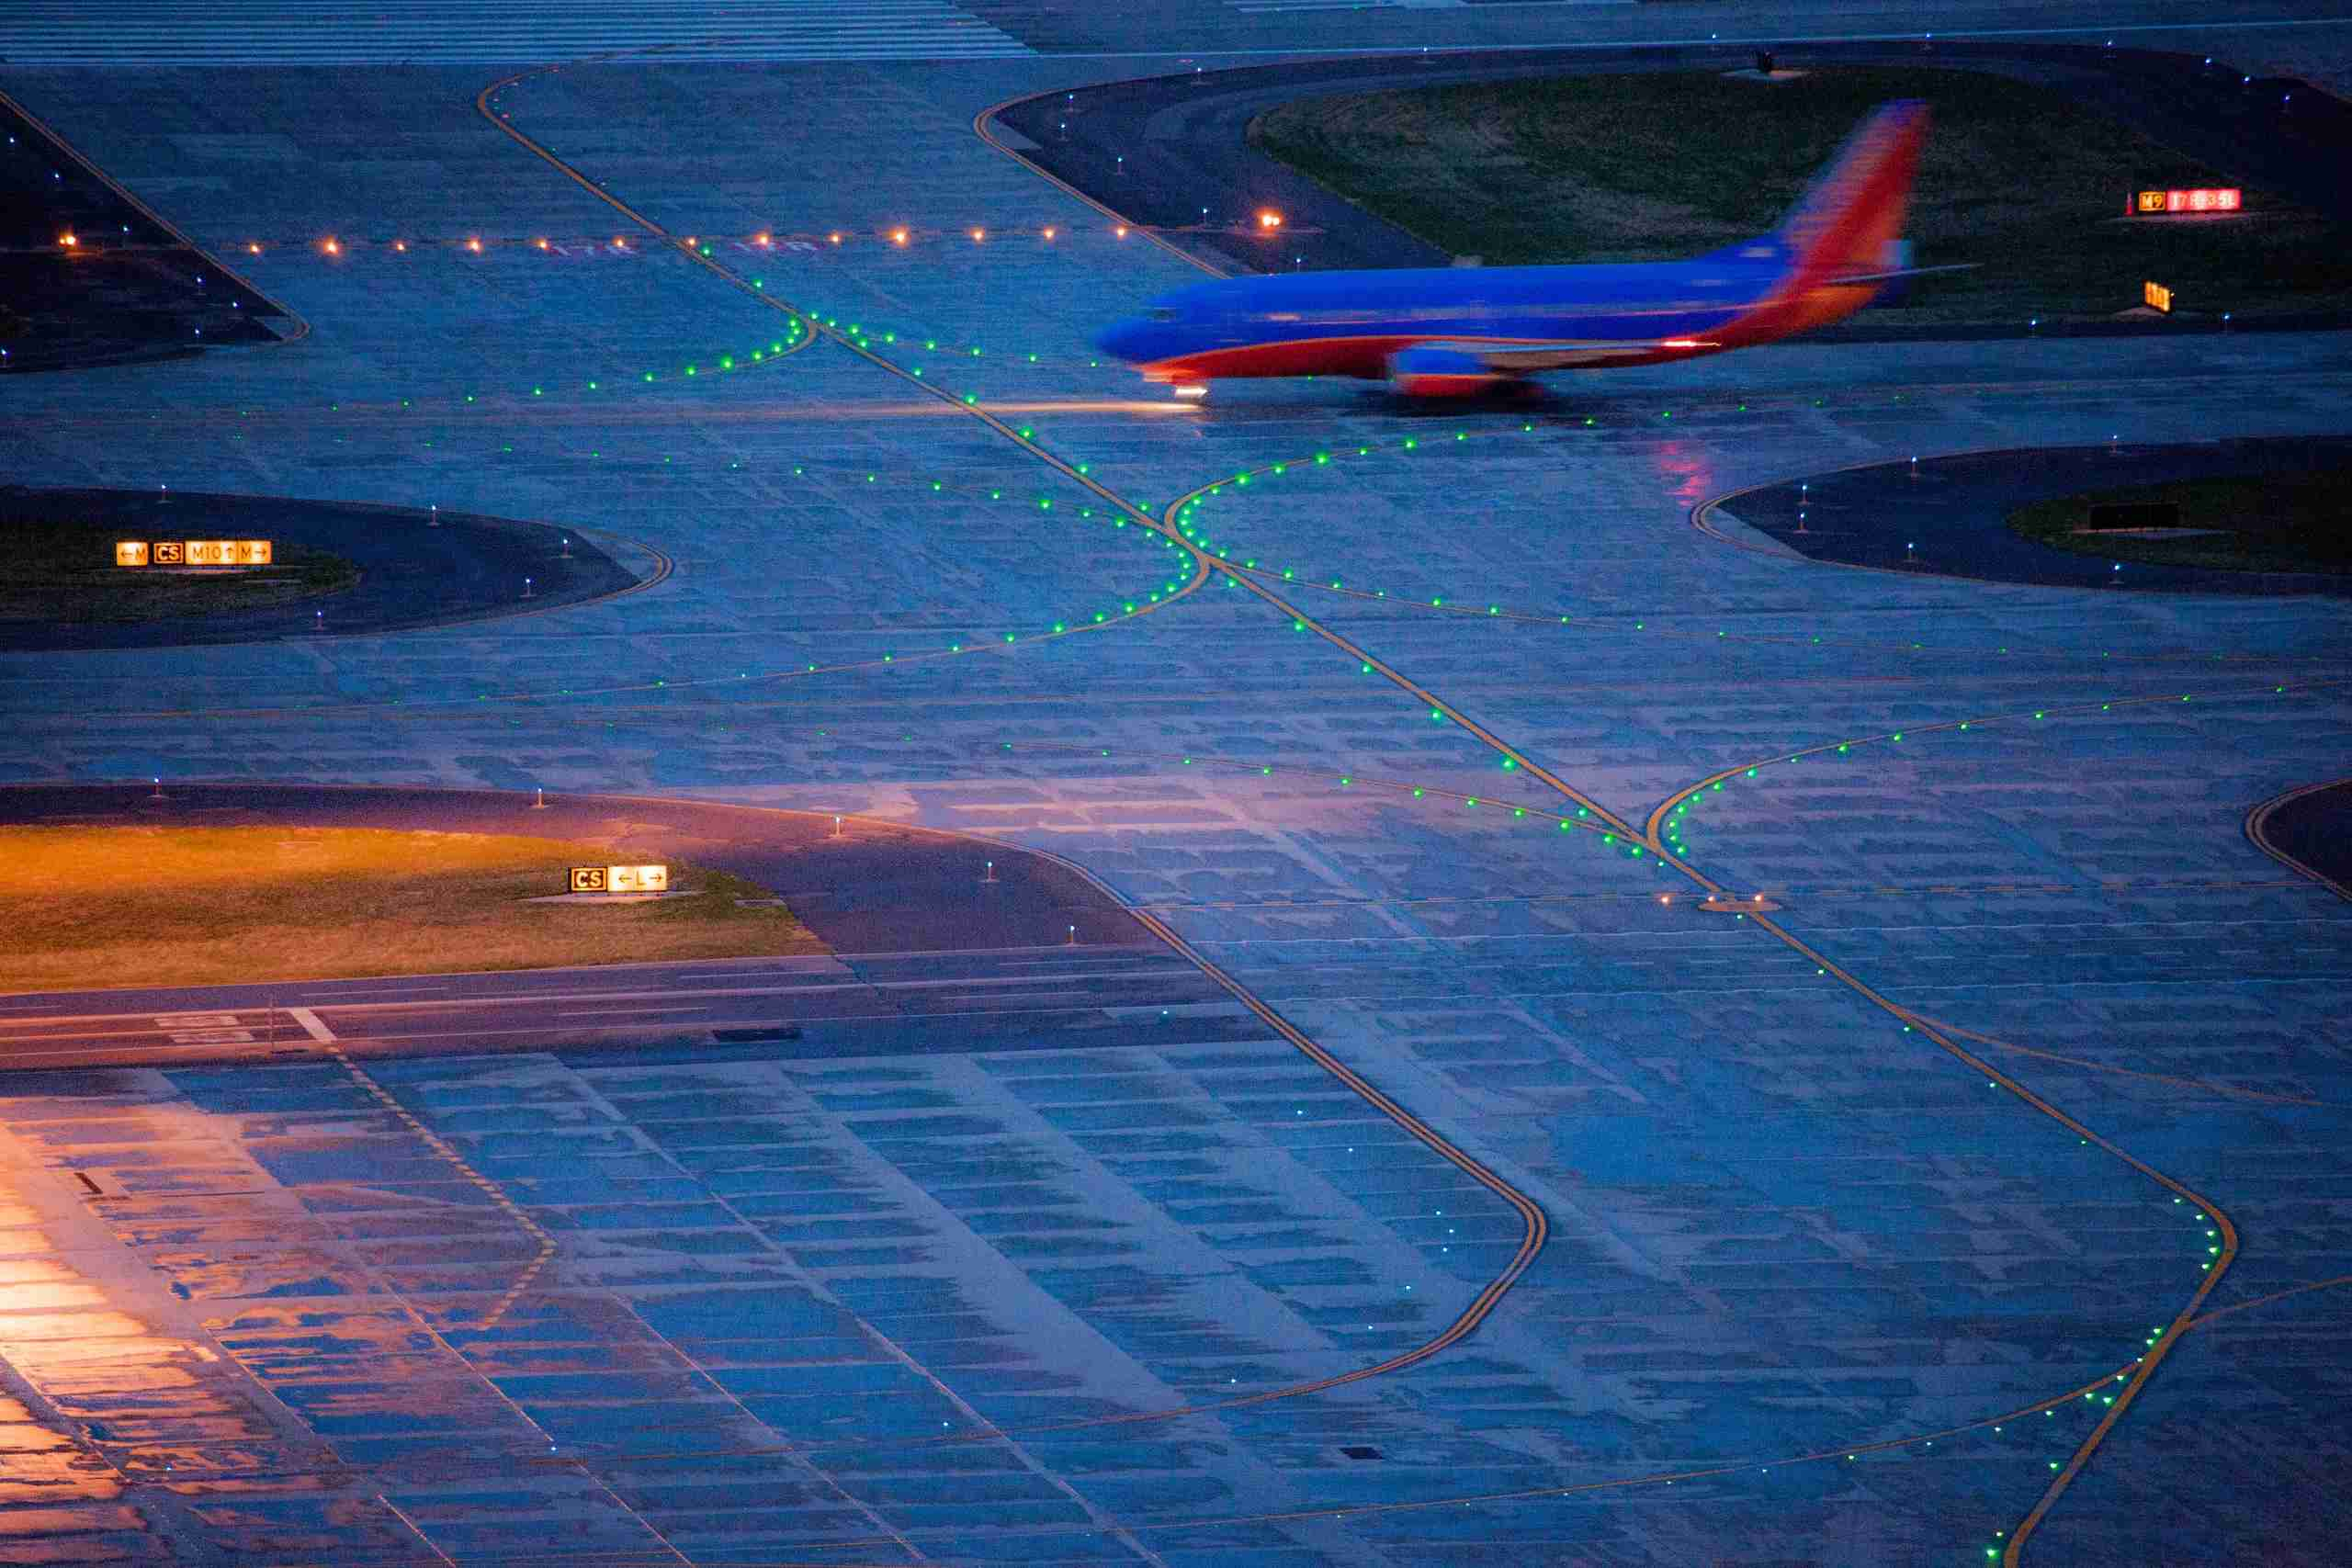 A network of taxiways link parking stands to the runways. (Photograph provided courtesy of Denver International Airport)